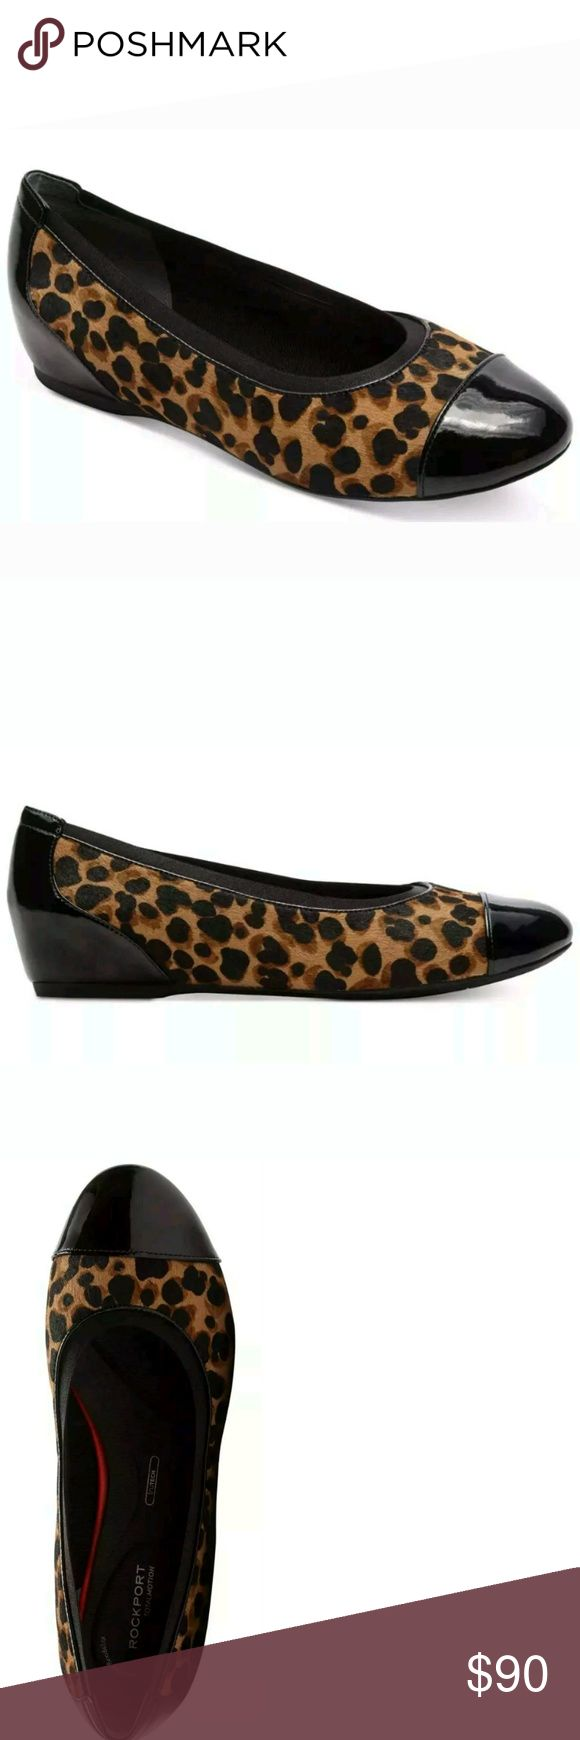 Rockport Ballet Flats Leopard Print Size 5 Walk taller in the Rockport® Total Motion® Hidden Wedge Gore Cap Toe. Soft uppers help create a glove like fit. A TPU plate adds stability and flexibility, that are designed to provide all-day support. Our truTech™ and truTech™+ technologies offer maximum shock absorption and are created to give you comfort with every step. Dress them up for the office, or pair them with your favorite jeans. Your feet can look and feel great. Rockport Shoes Flats…